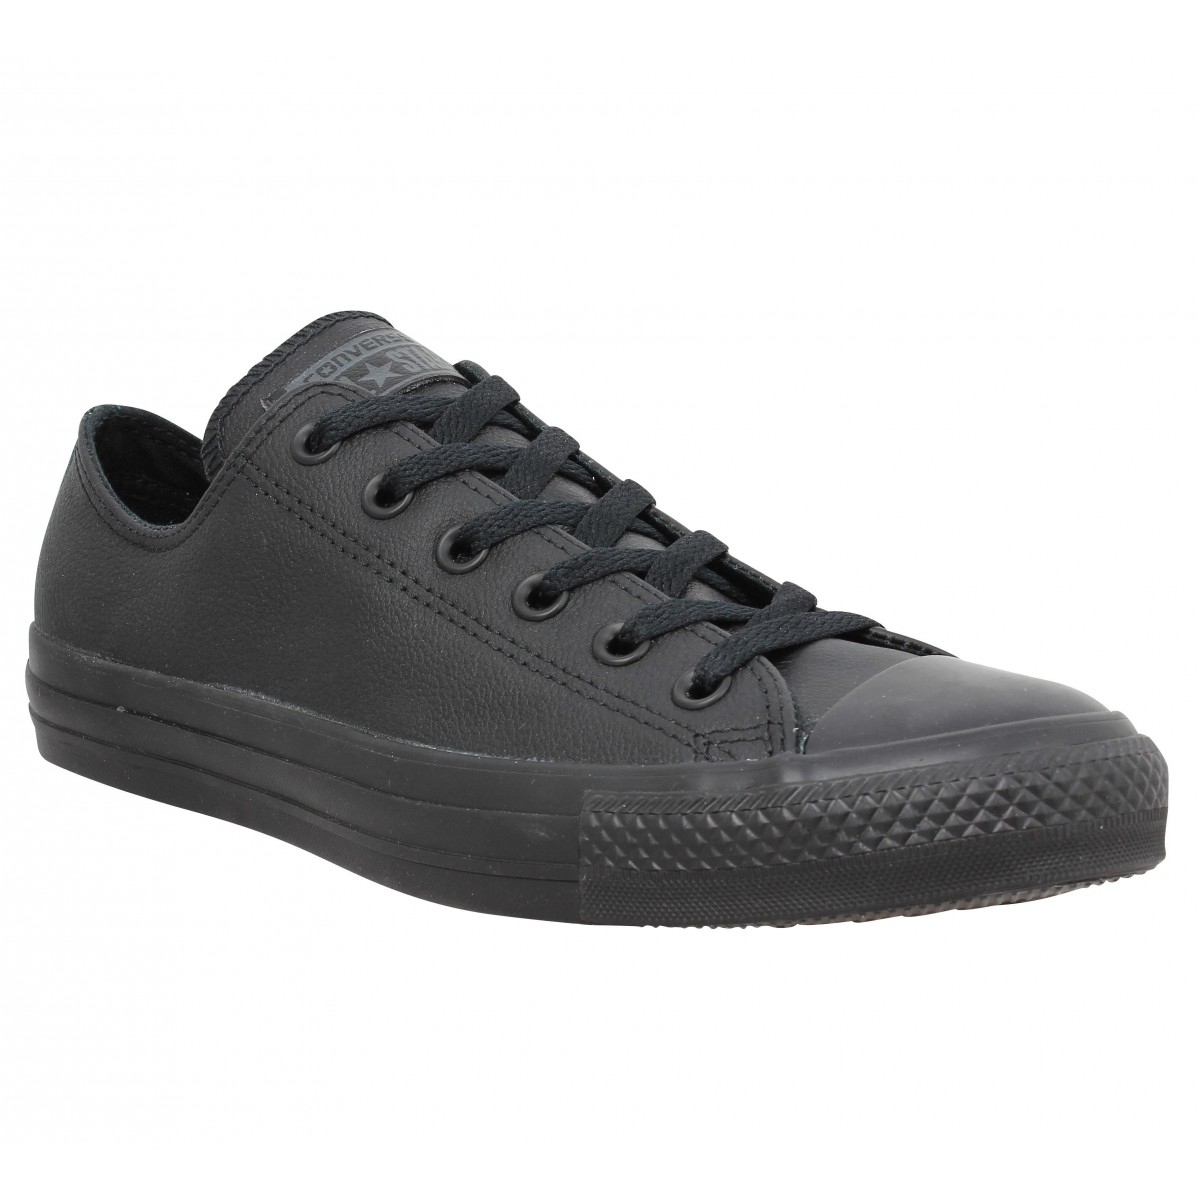 Baskets CONVERSE Chuck Taylor All Star cuir Femme Black